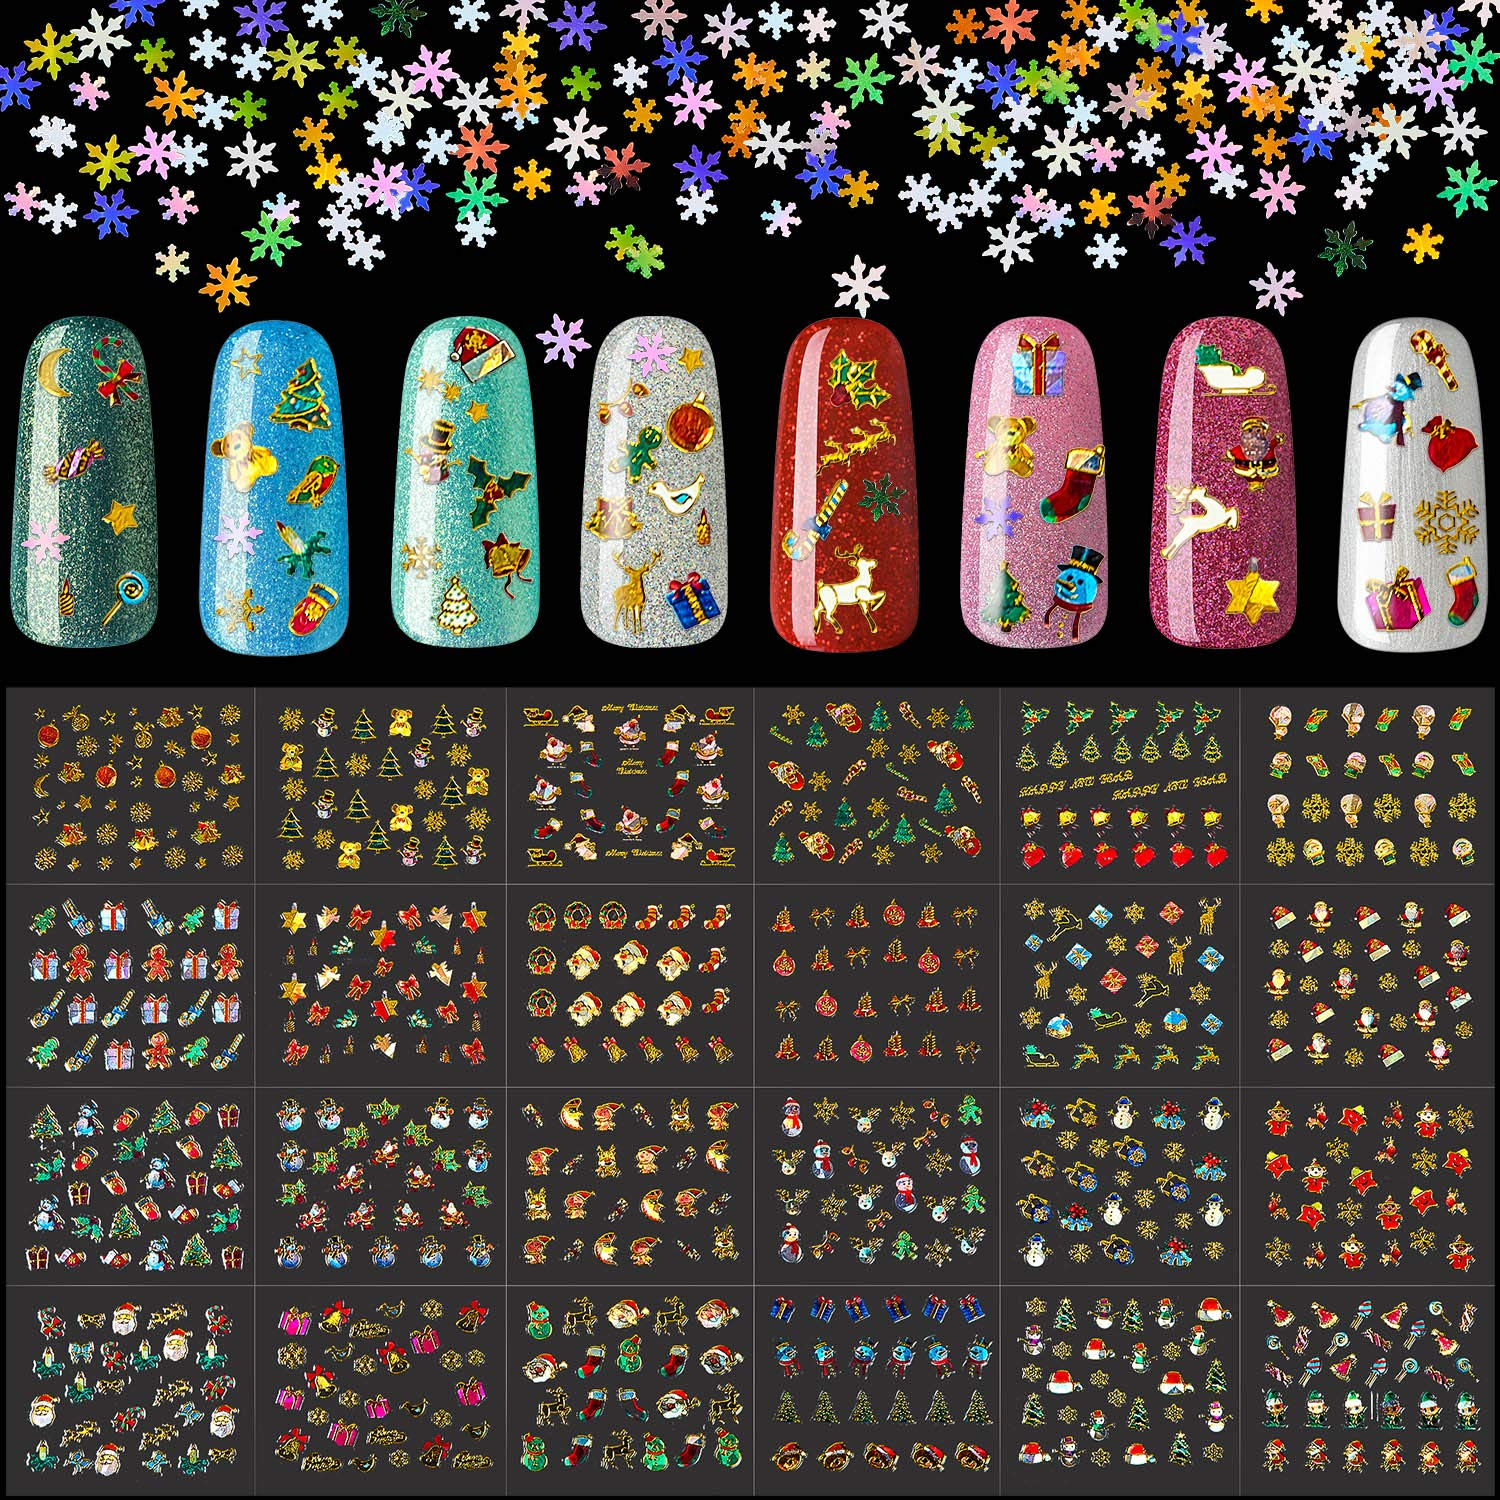 3000 online shopping Pieces Christmas Nail Art Sequins Fort Worth Mall Inclu Snowflake Stickers